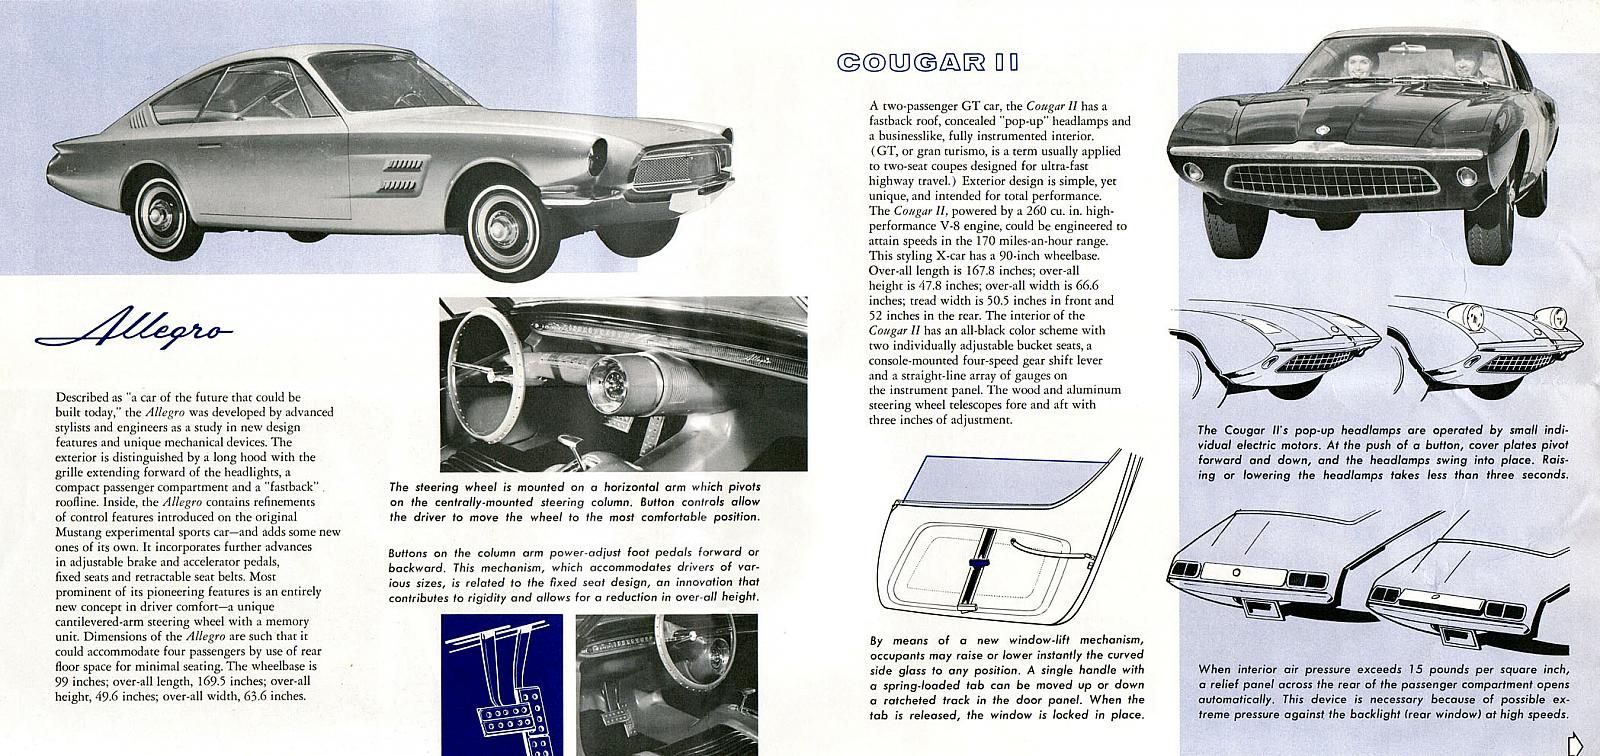 1963 ford experimental cars brochure featuring allegro mustang ii and cougar ii